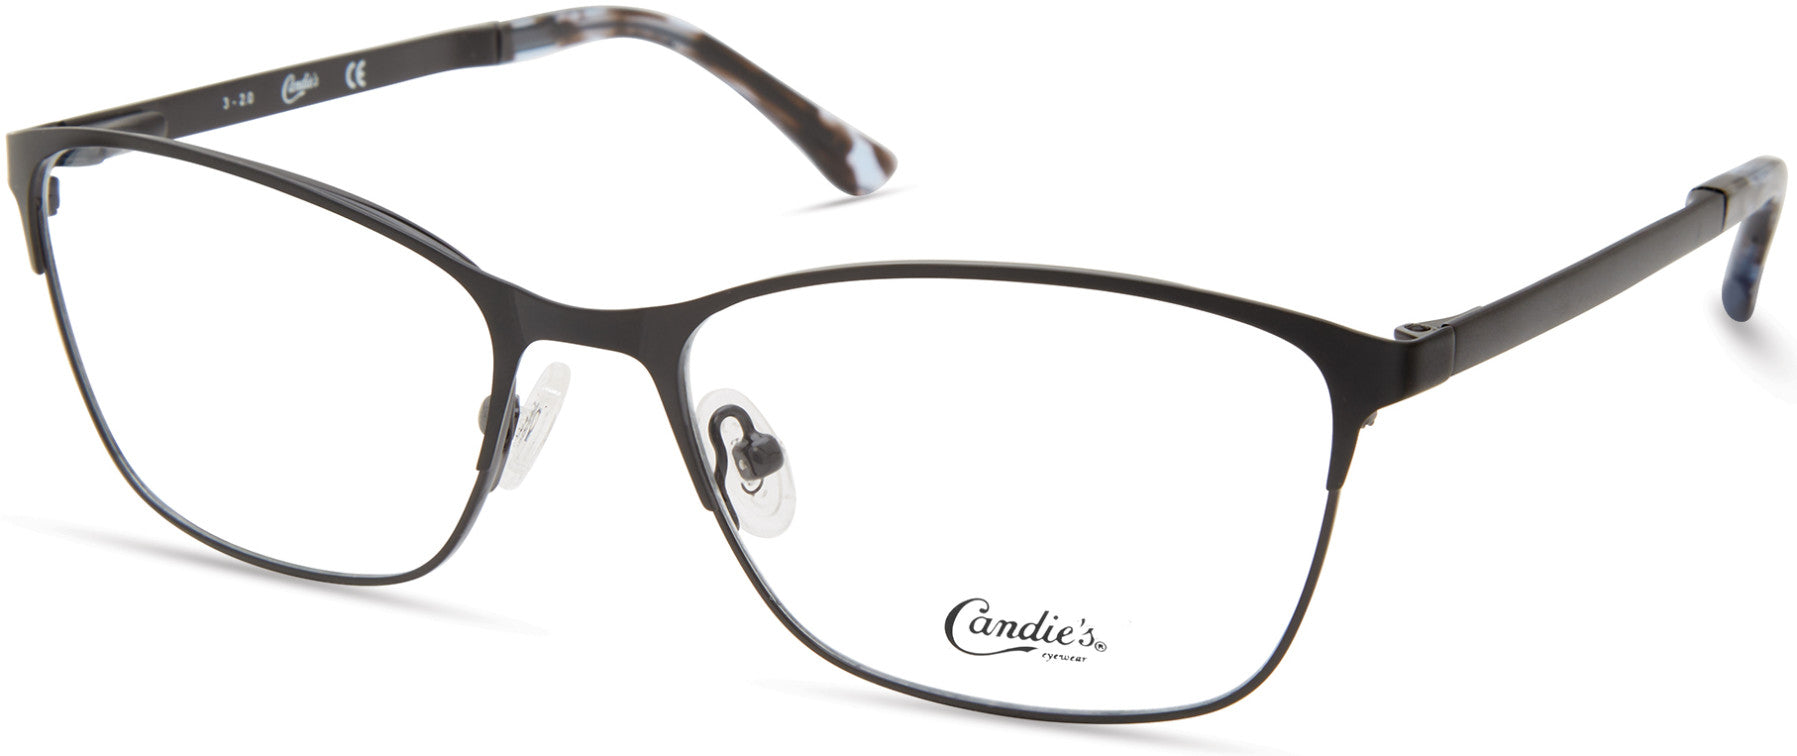 Candies CA0197 Square Eyeglasses For Women